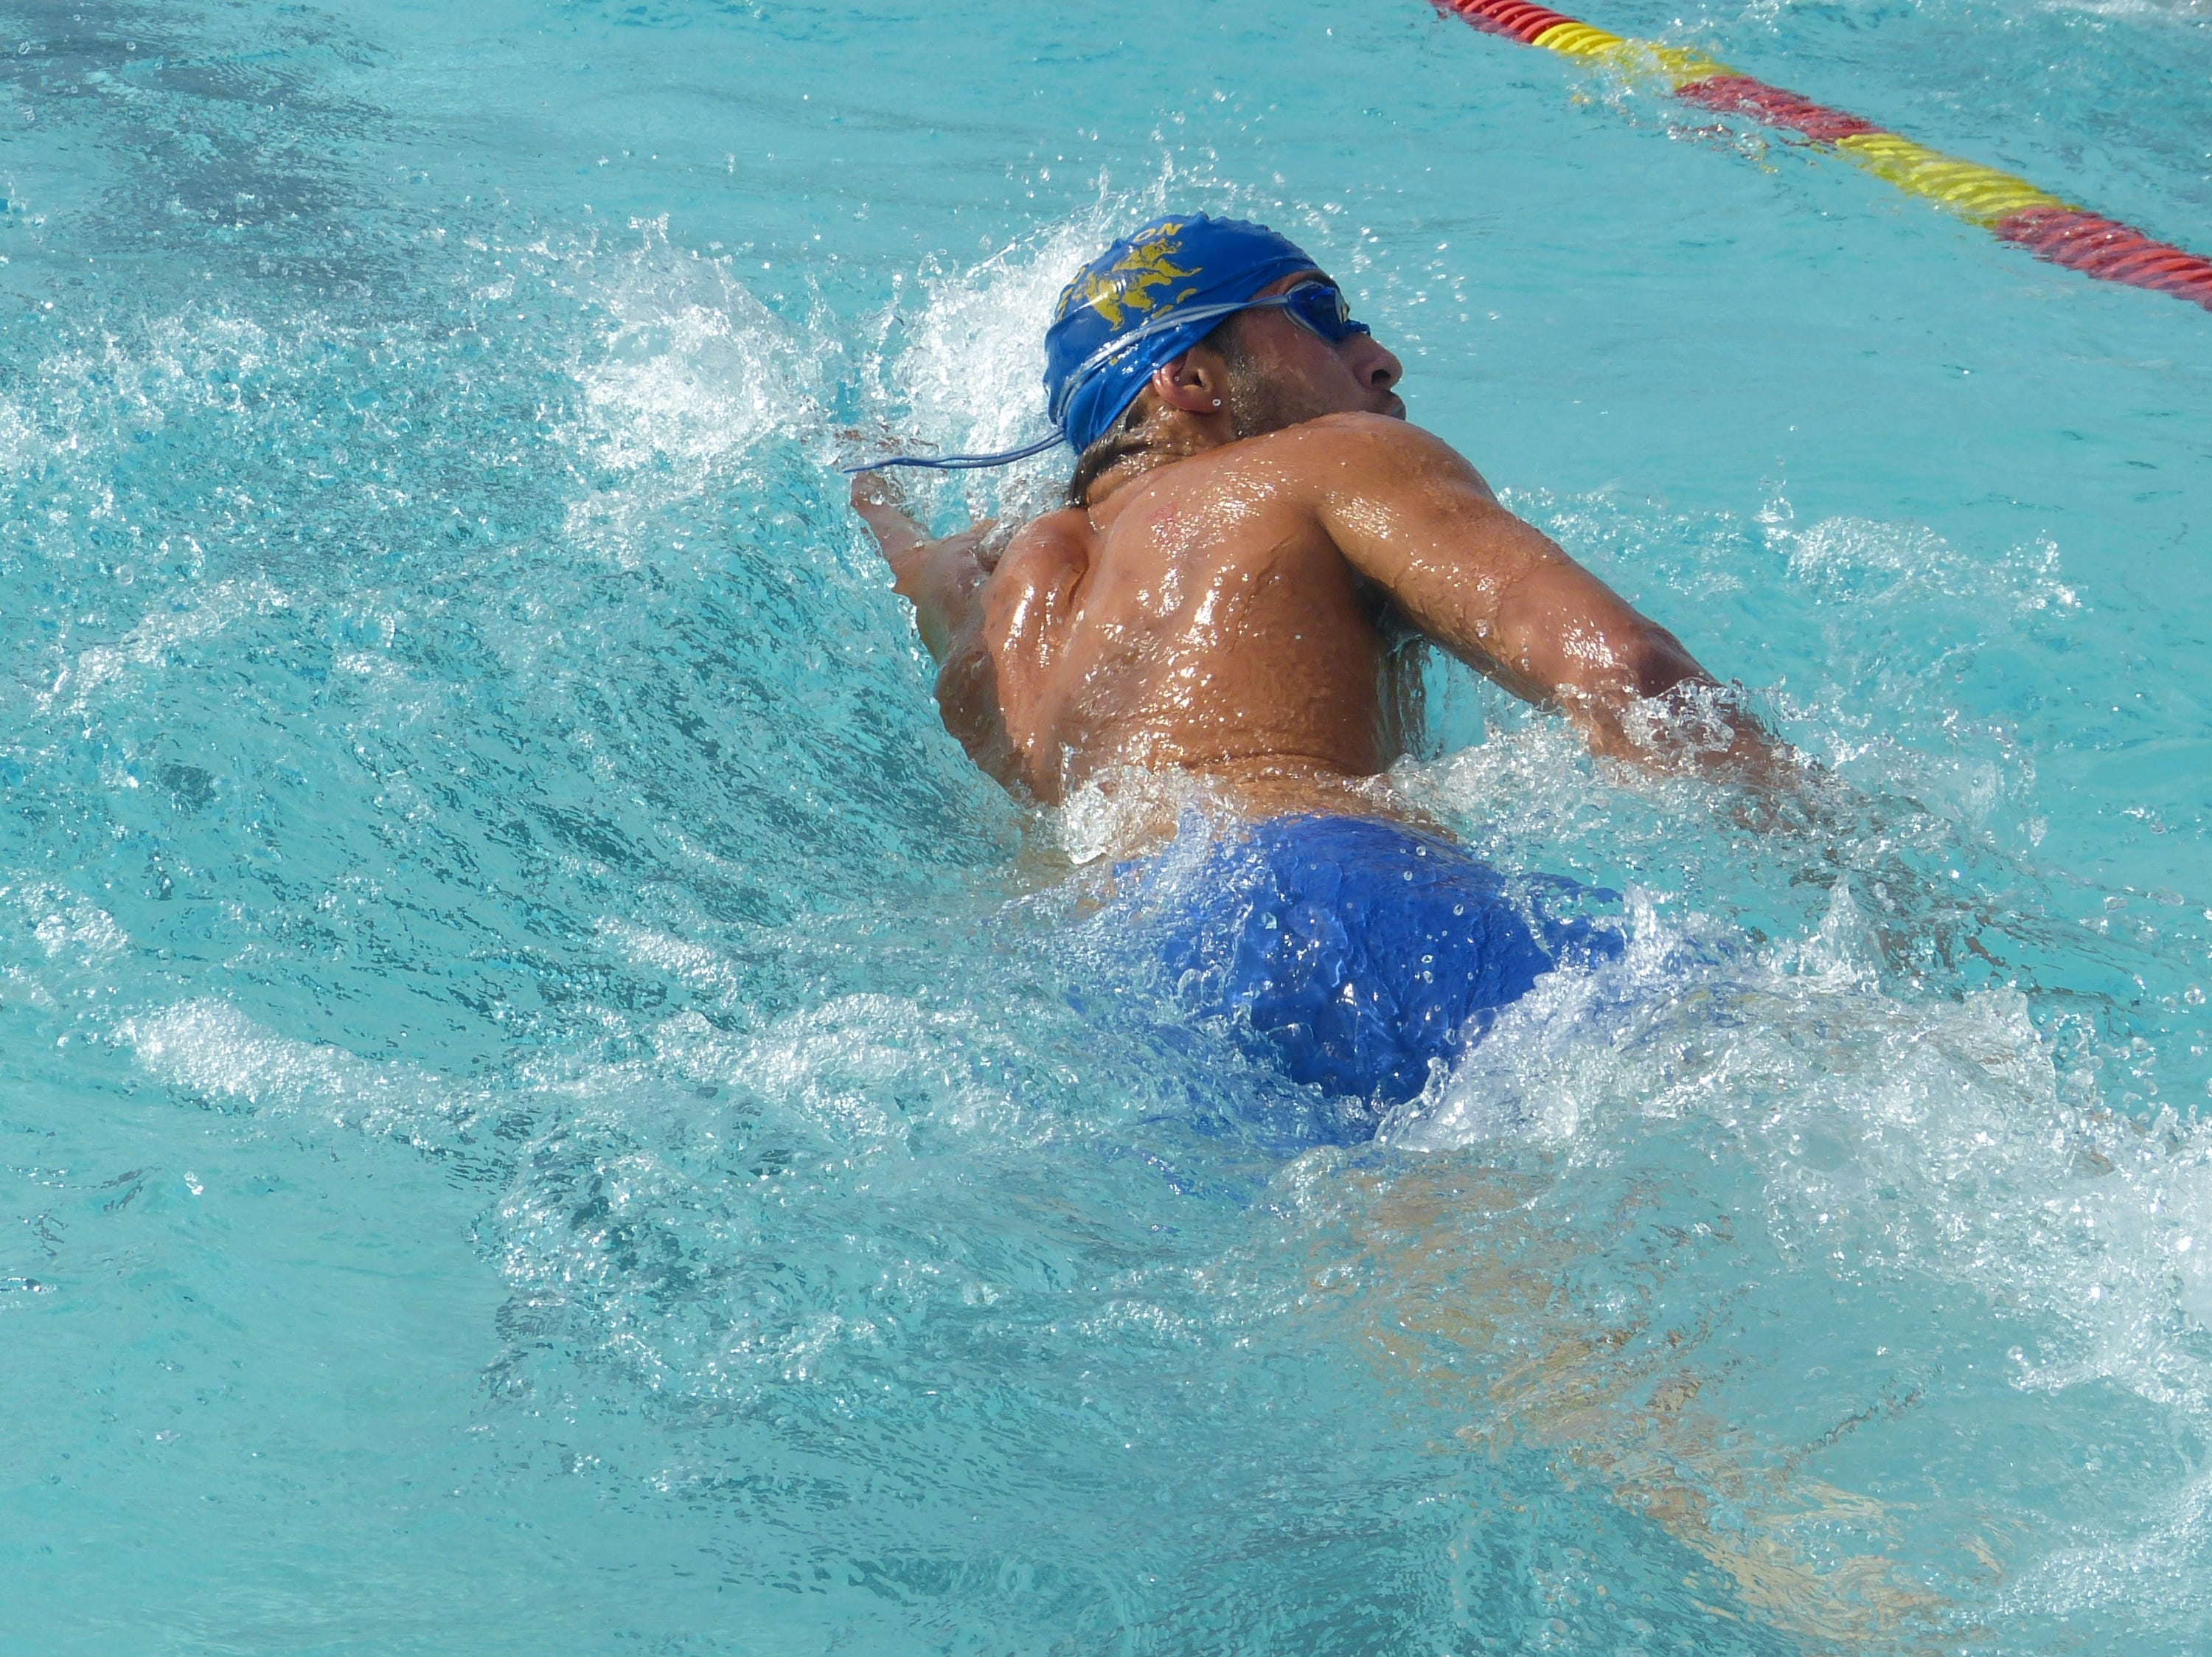 Stevyn Fletcher of Anderson races in the 100-yard freestyle Wednesday at the NSCIF trials for Division 2 schools at West Valley High School on Oct. 24, 2018.